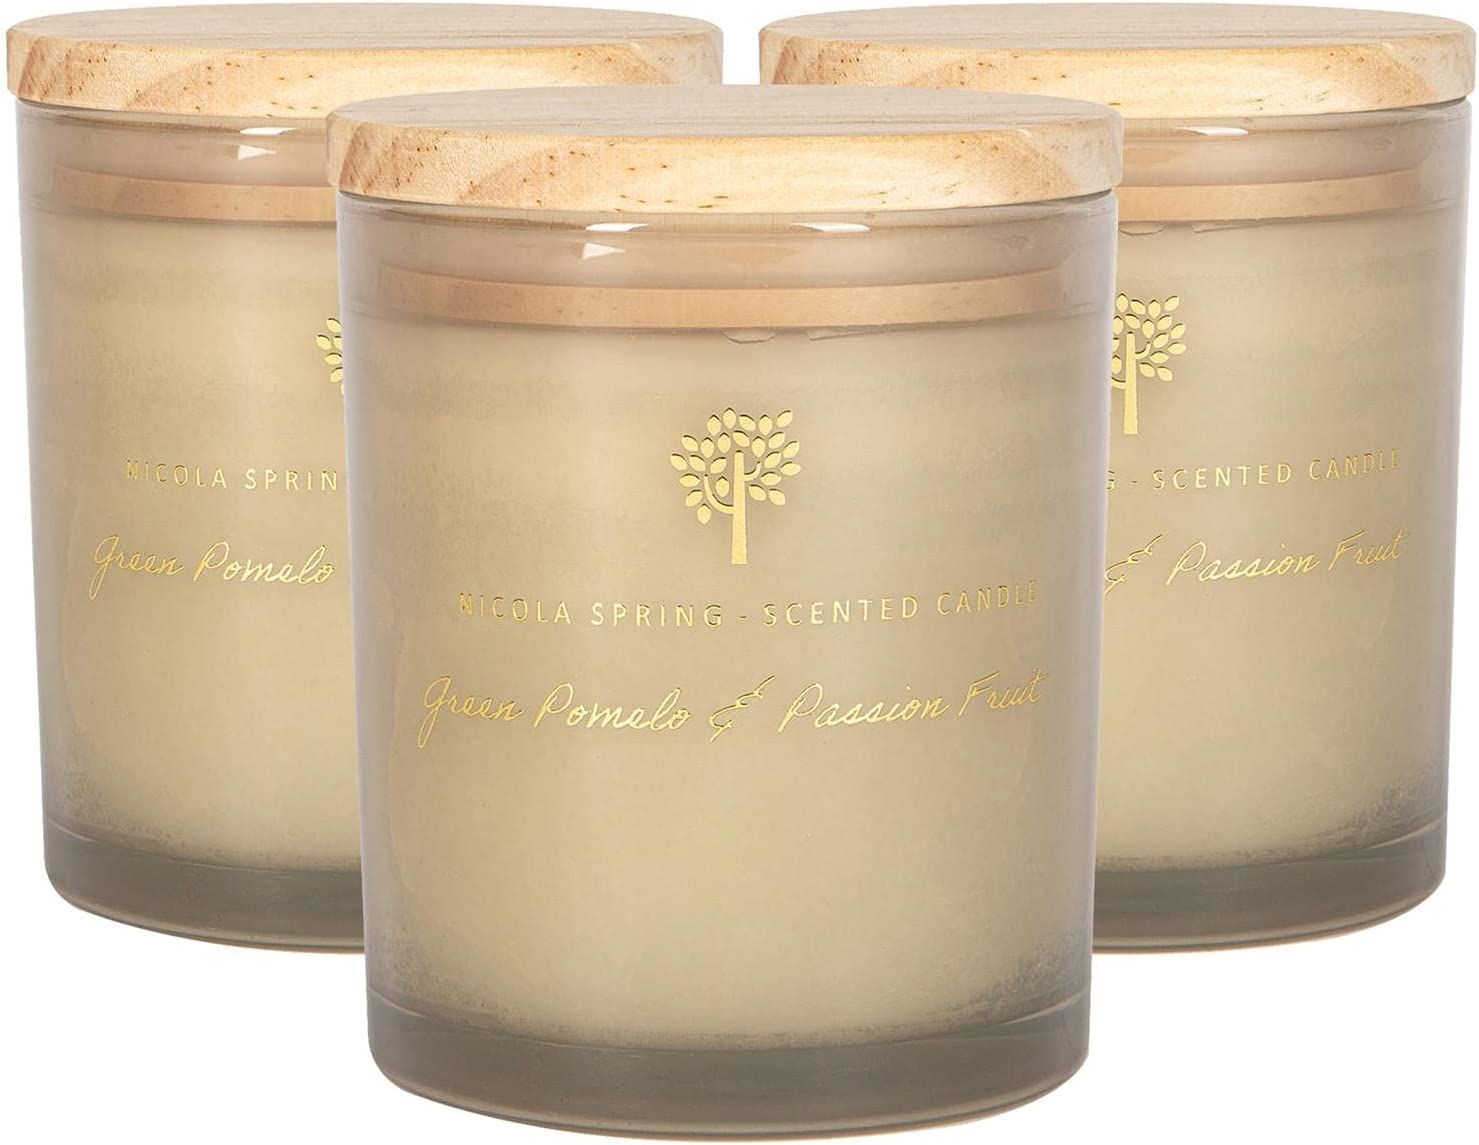 Nicola Spring Soy Wax Scented High quality new Cheap mail order specialty store - Glass Gift Candles Aromatherapy